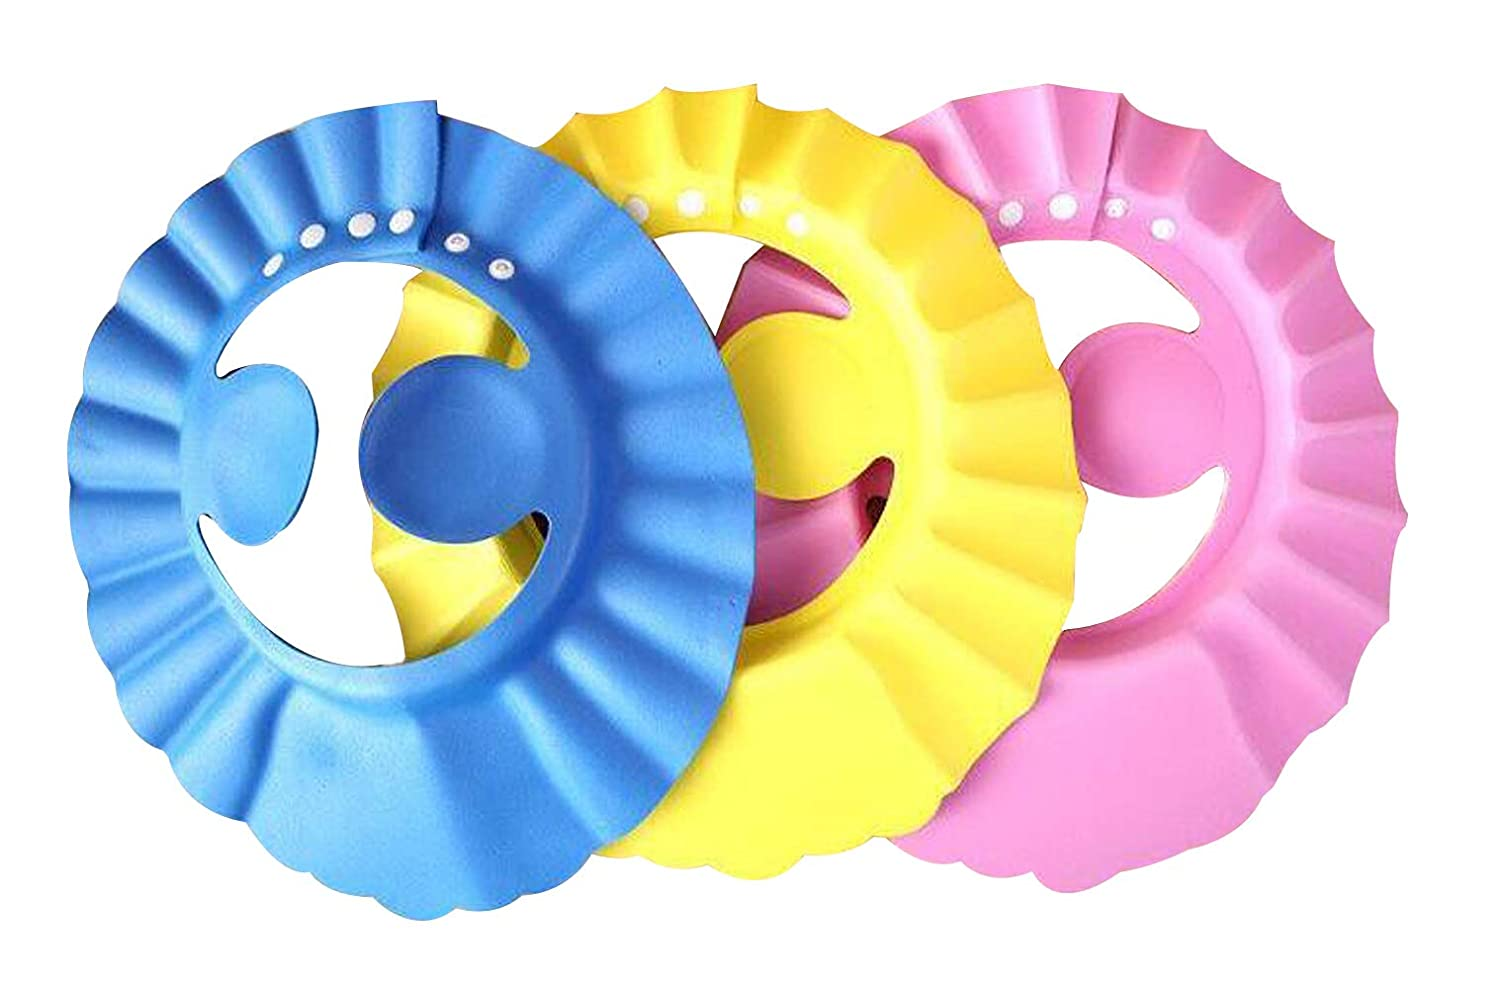 Baby Shower Cap Bath Shampoo Cap with Ear Protection Device, 3 Adjustable Soft Shampoo Caps (Blue, Yellow, Pink) That Can Protect Your Baby's Eyes